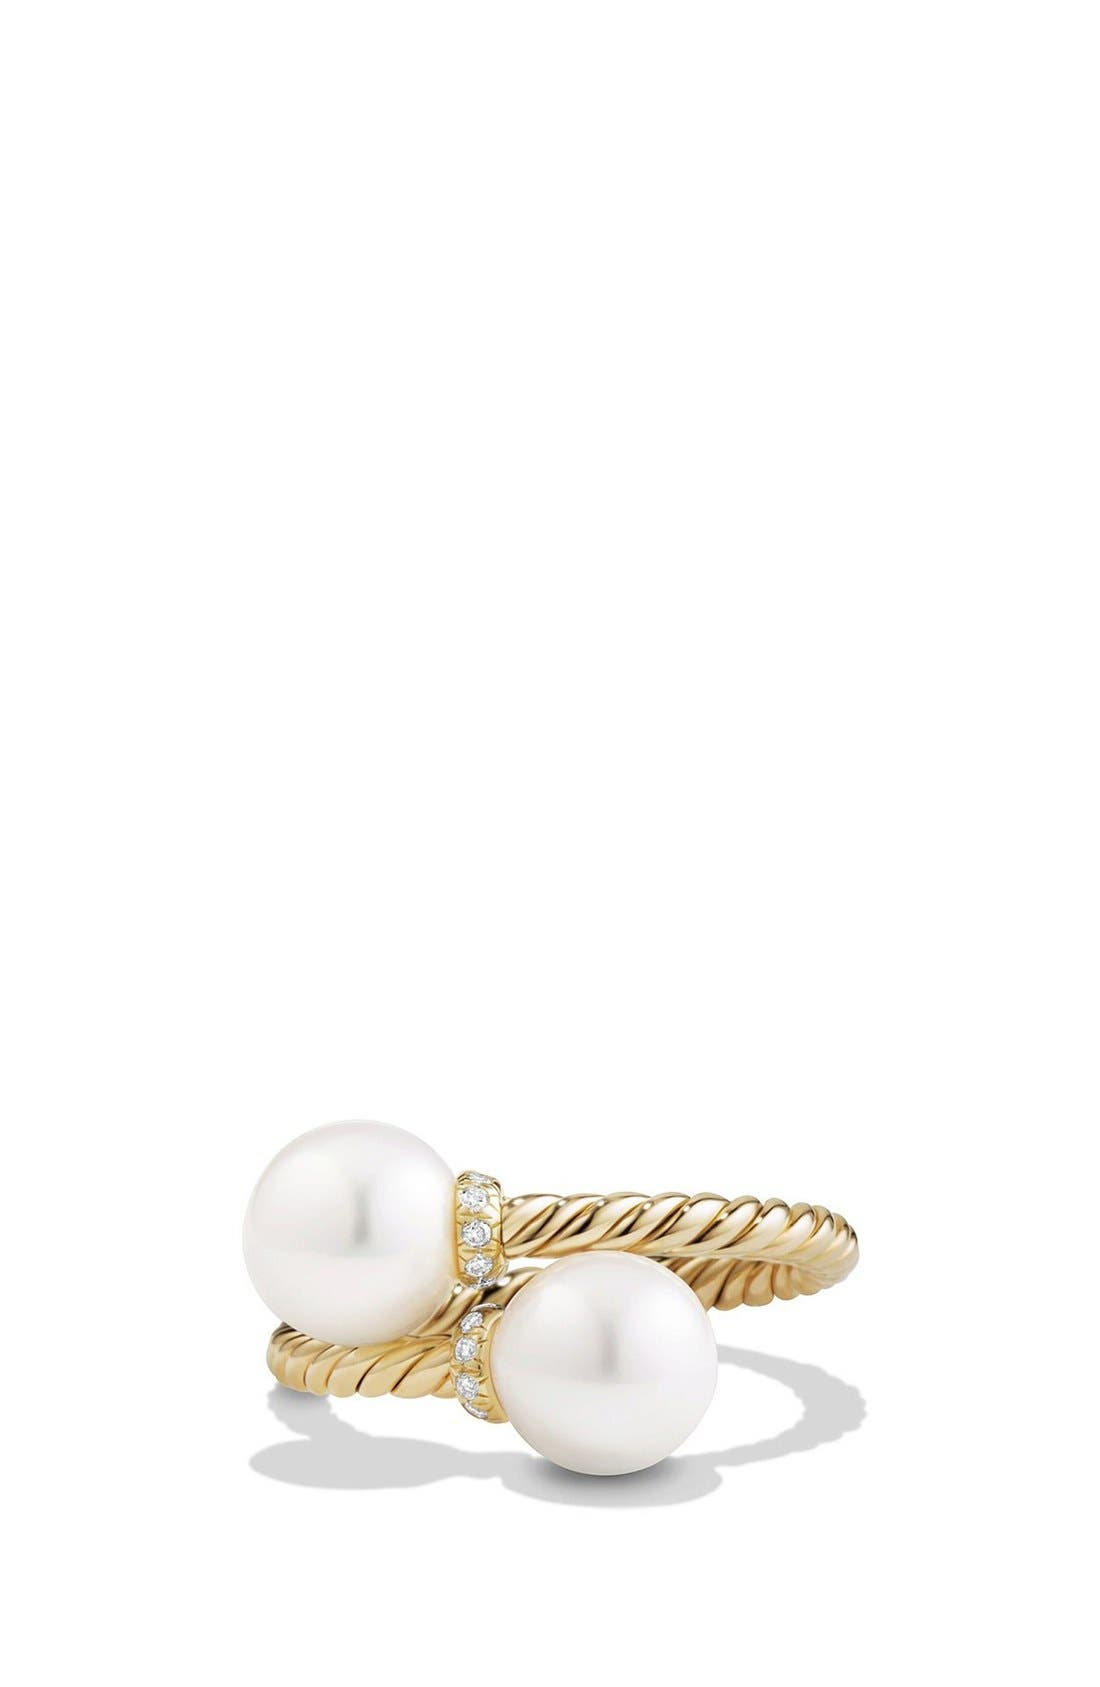 'Solari' Bead Ring with Diamonds and Pearls in 18K Gold,                             Main thumbnail 1, color,                             PEARL